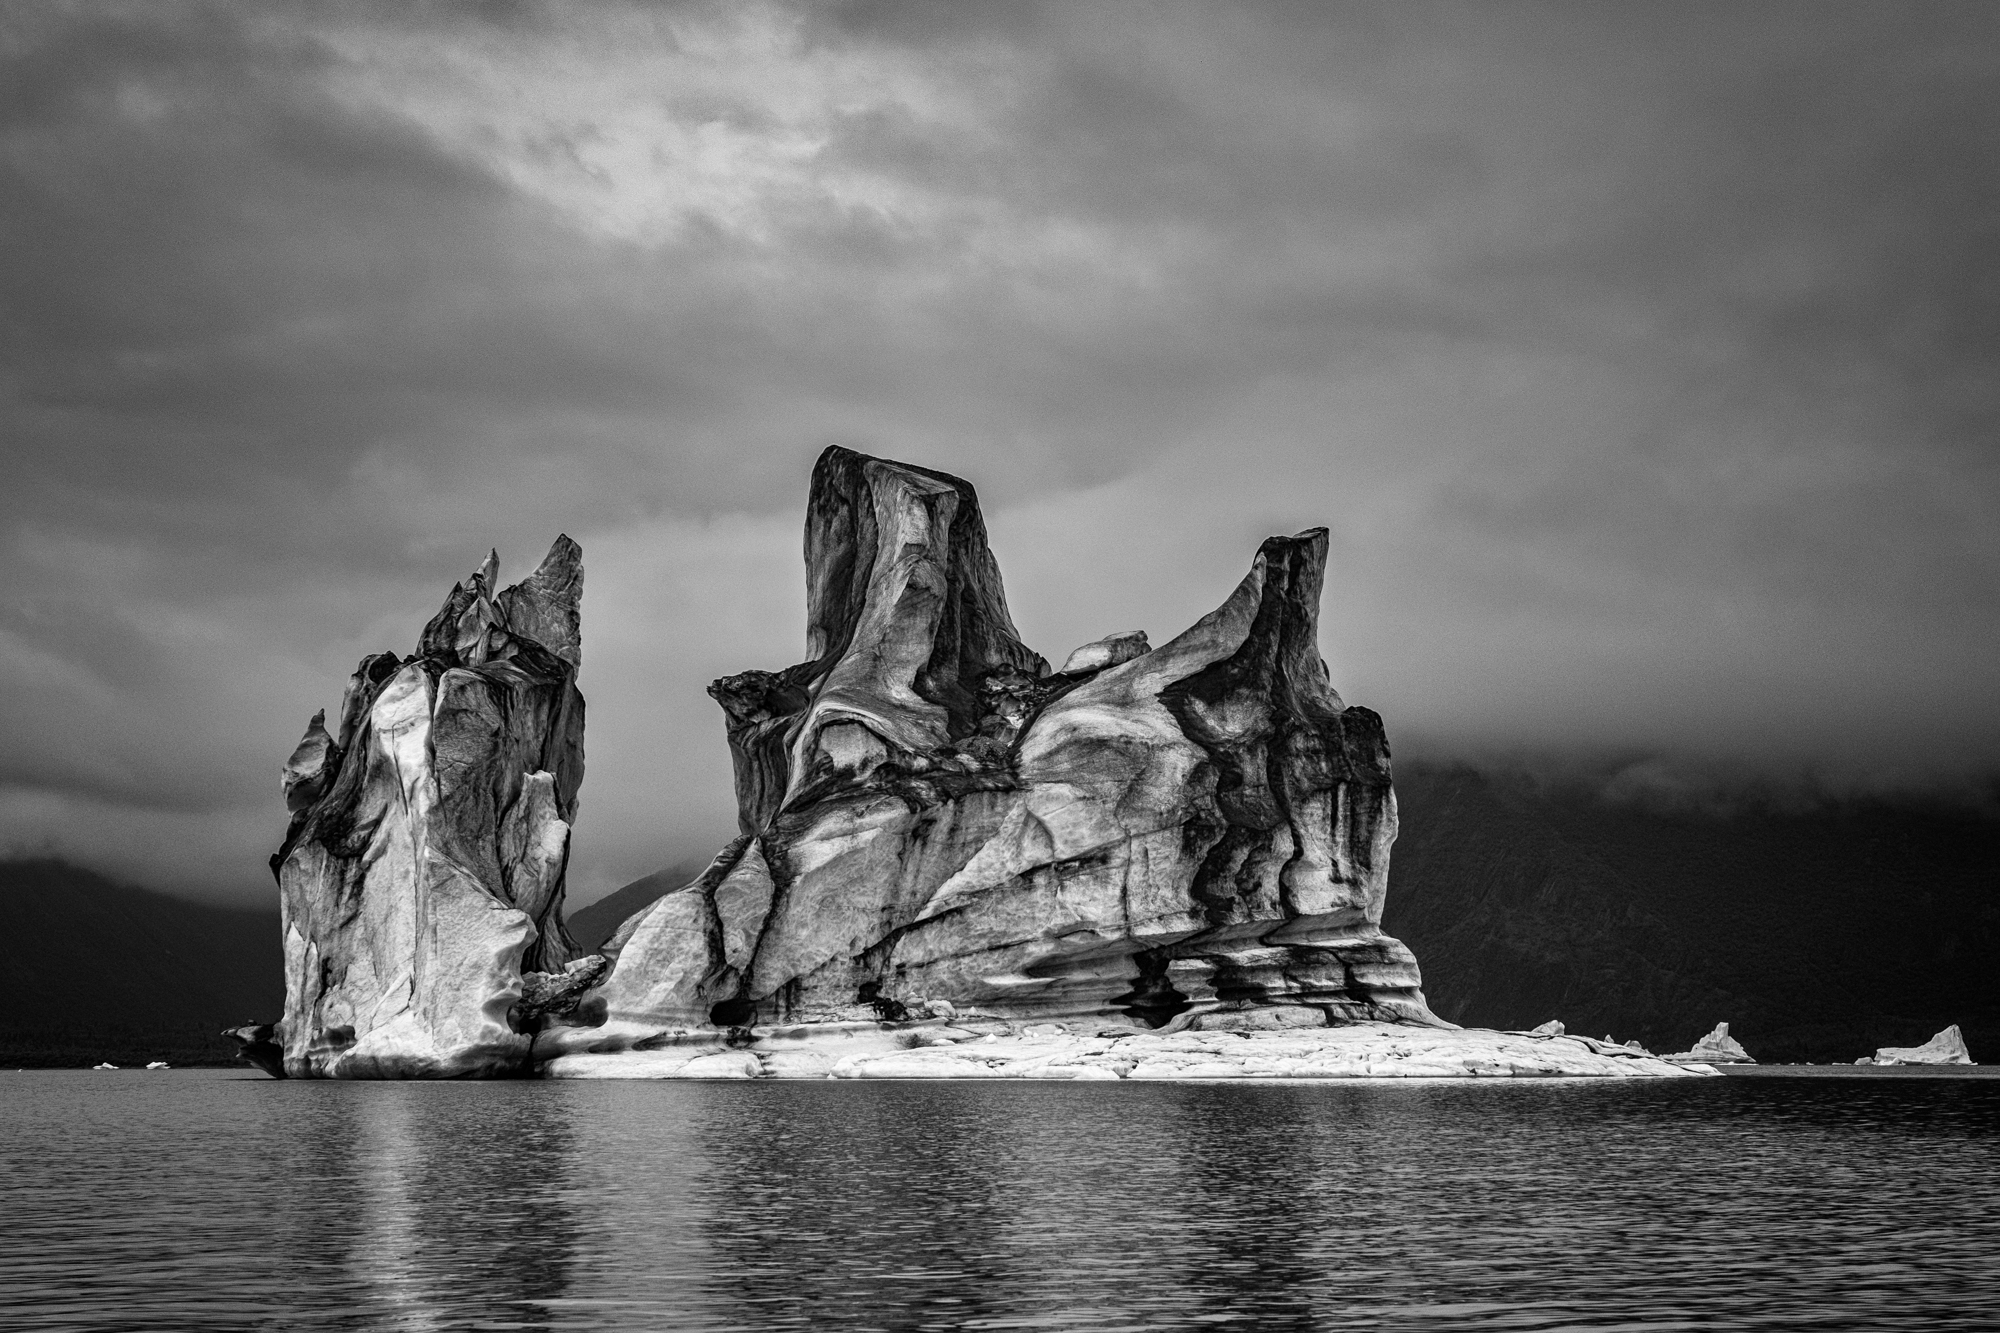 20160709-JI-Kenai Fjords National Park-_DSF0613-Edit.jpg